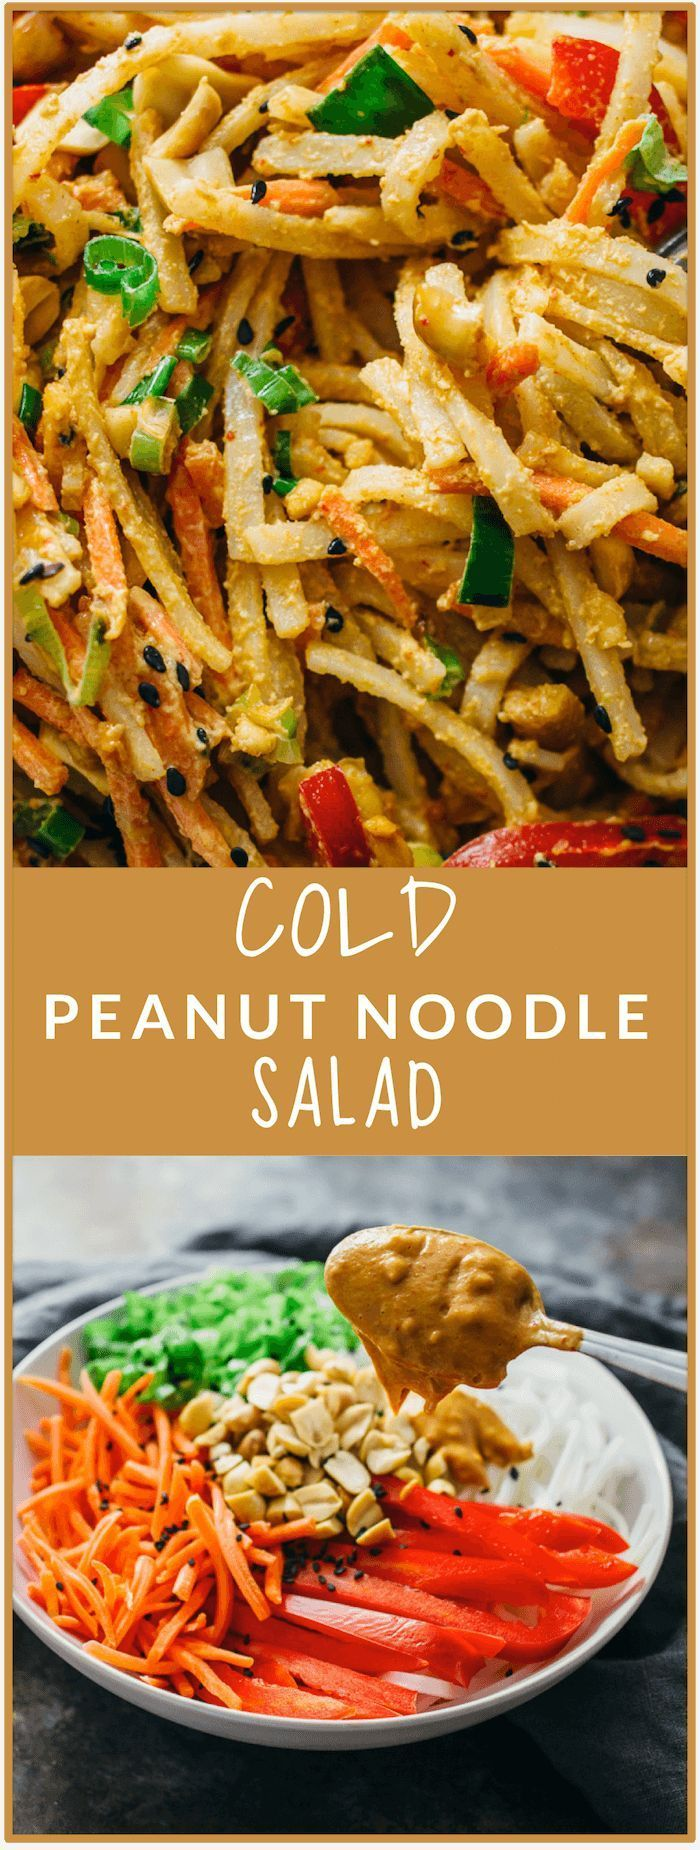 ... Vegetable Salads on Pinterest | Vegetable salad, Salad and Vegetables